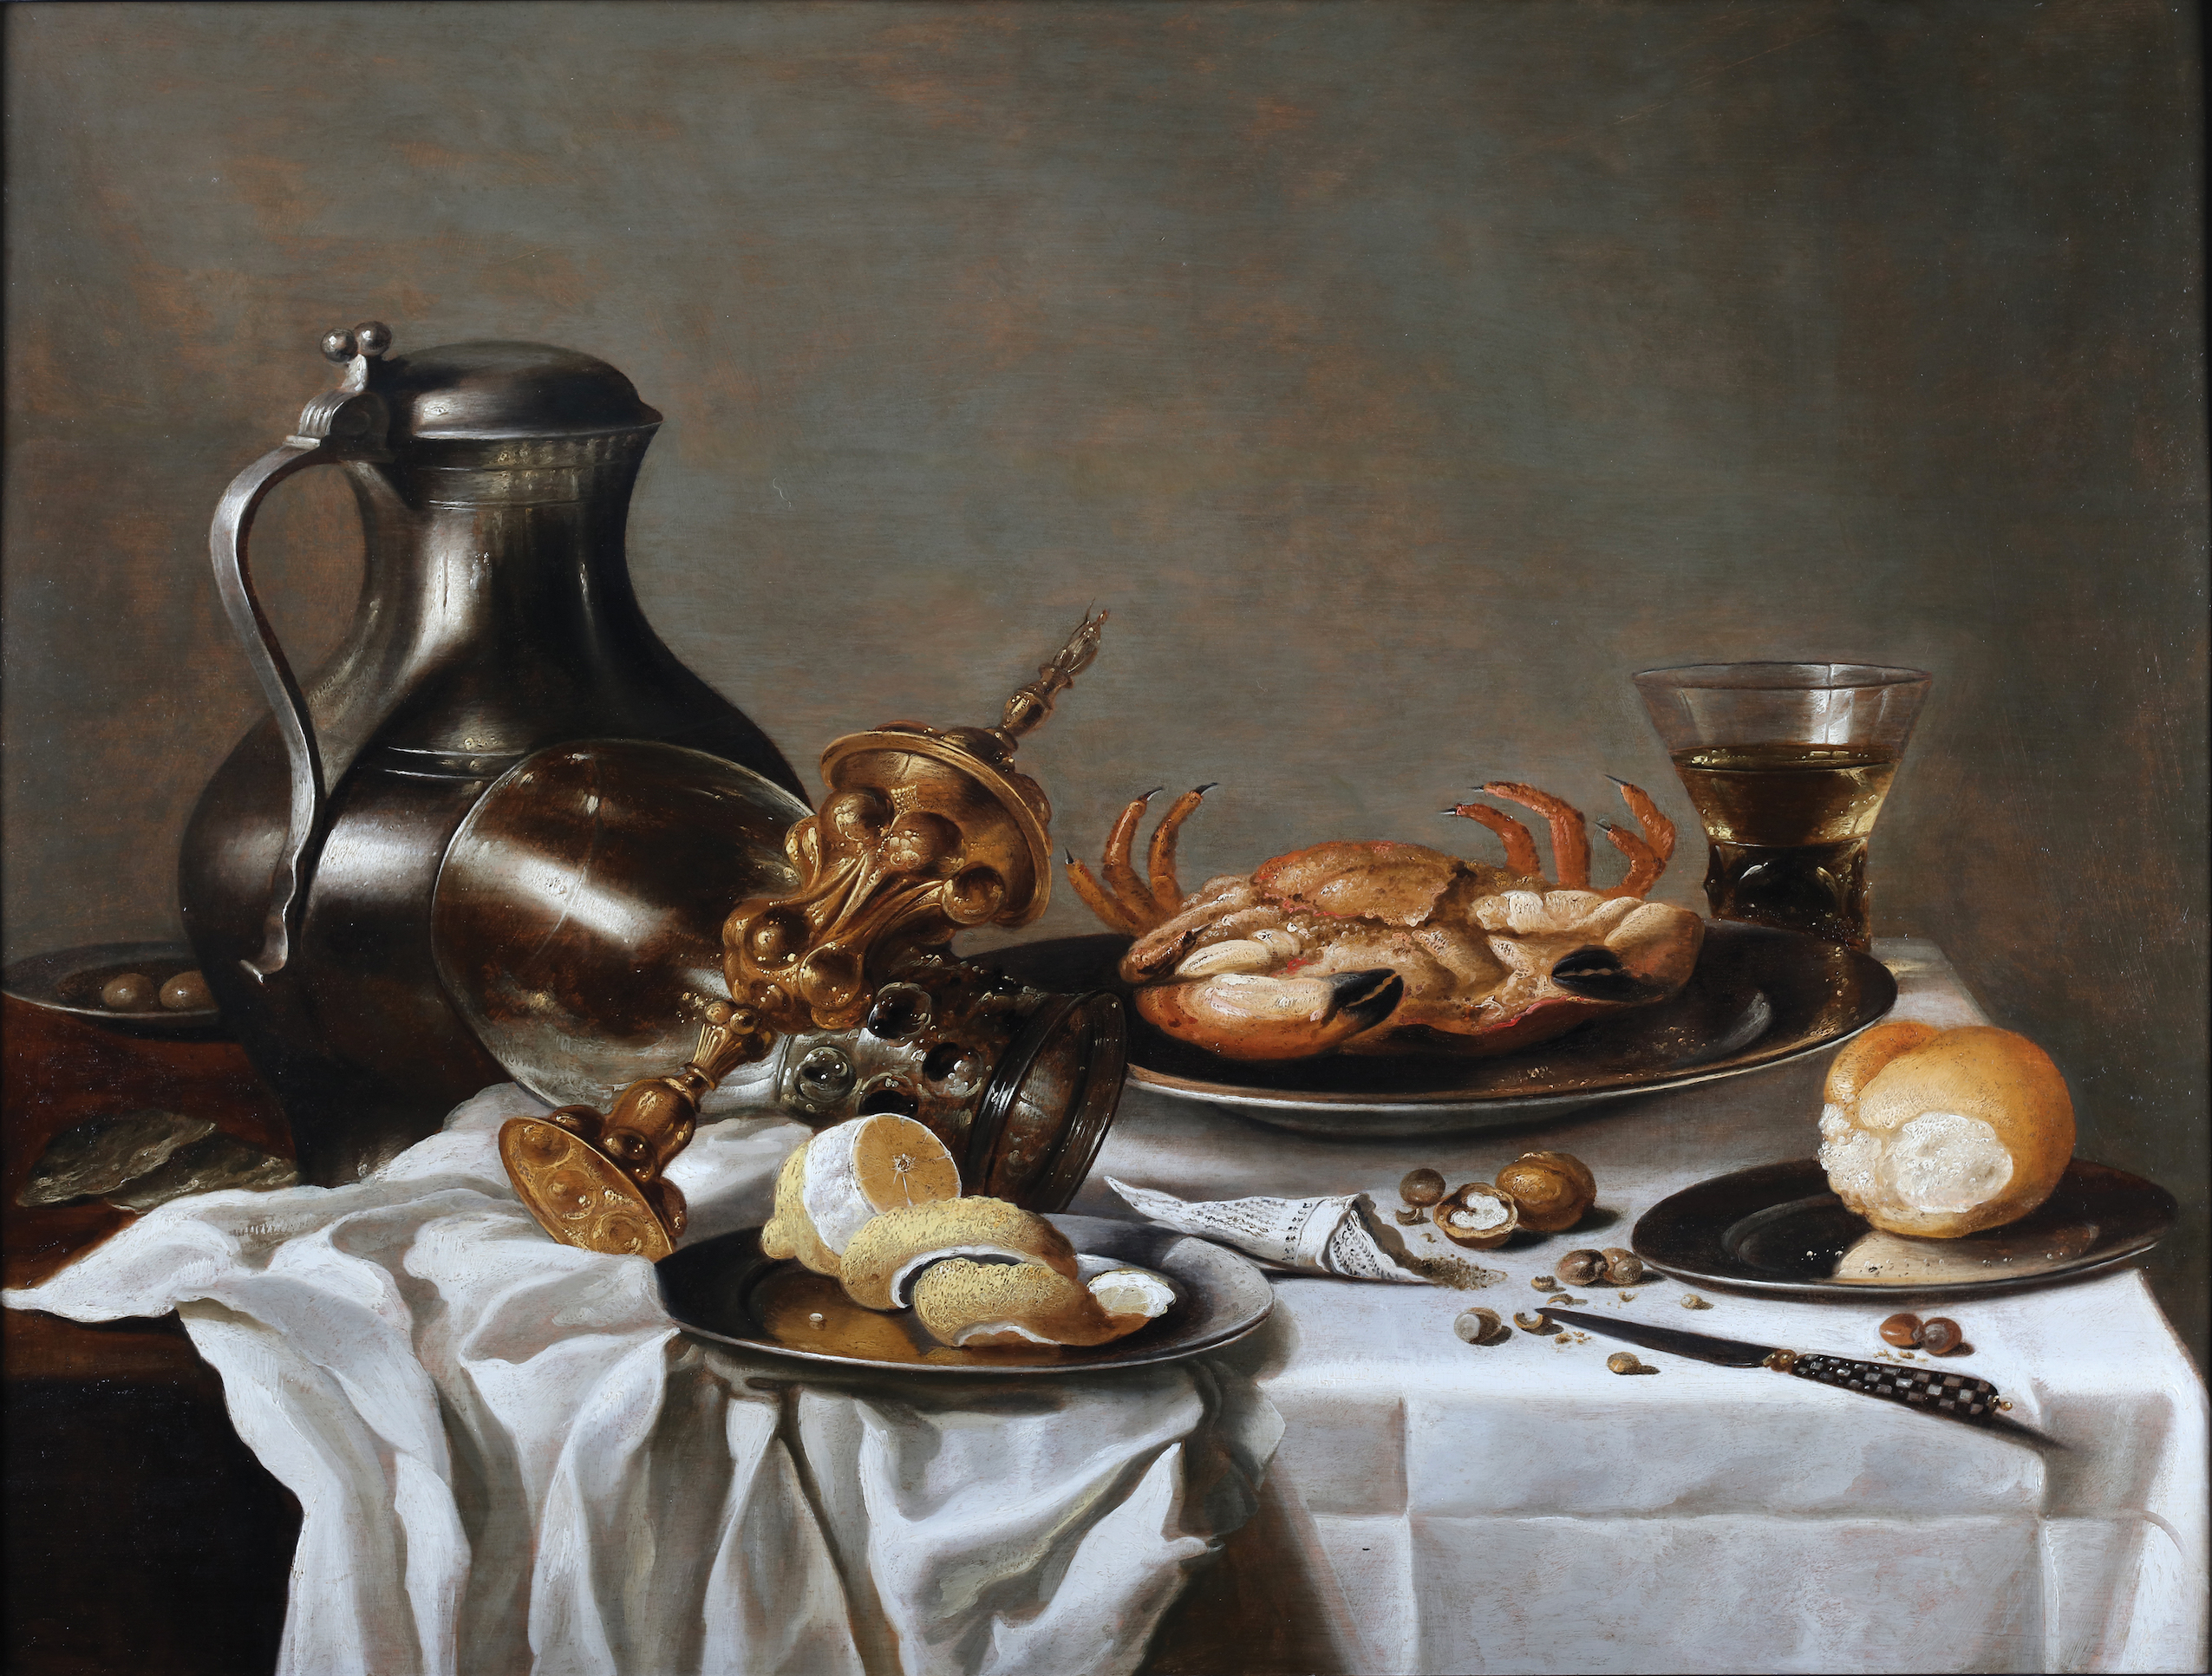 Still life with a peeled lemon, a pewter to the left, a roemer, a bread, a crab, a wine glass and a columbine cup on a table with a white wrinkled table cloth.